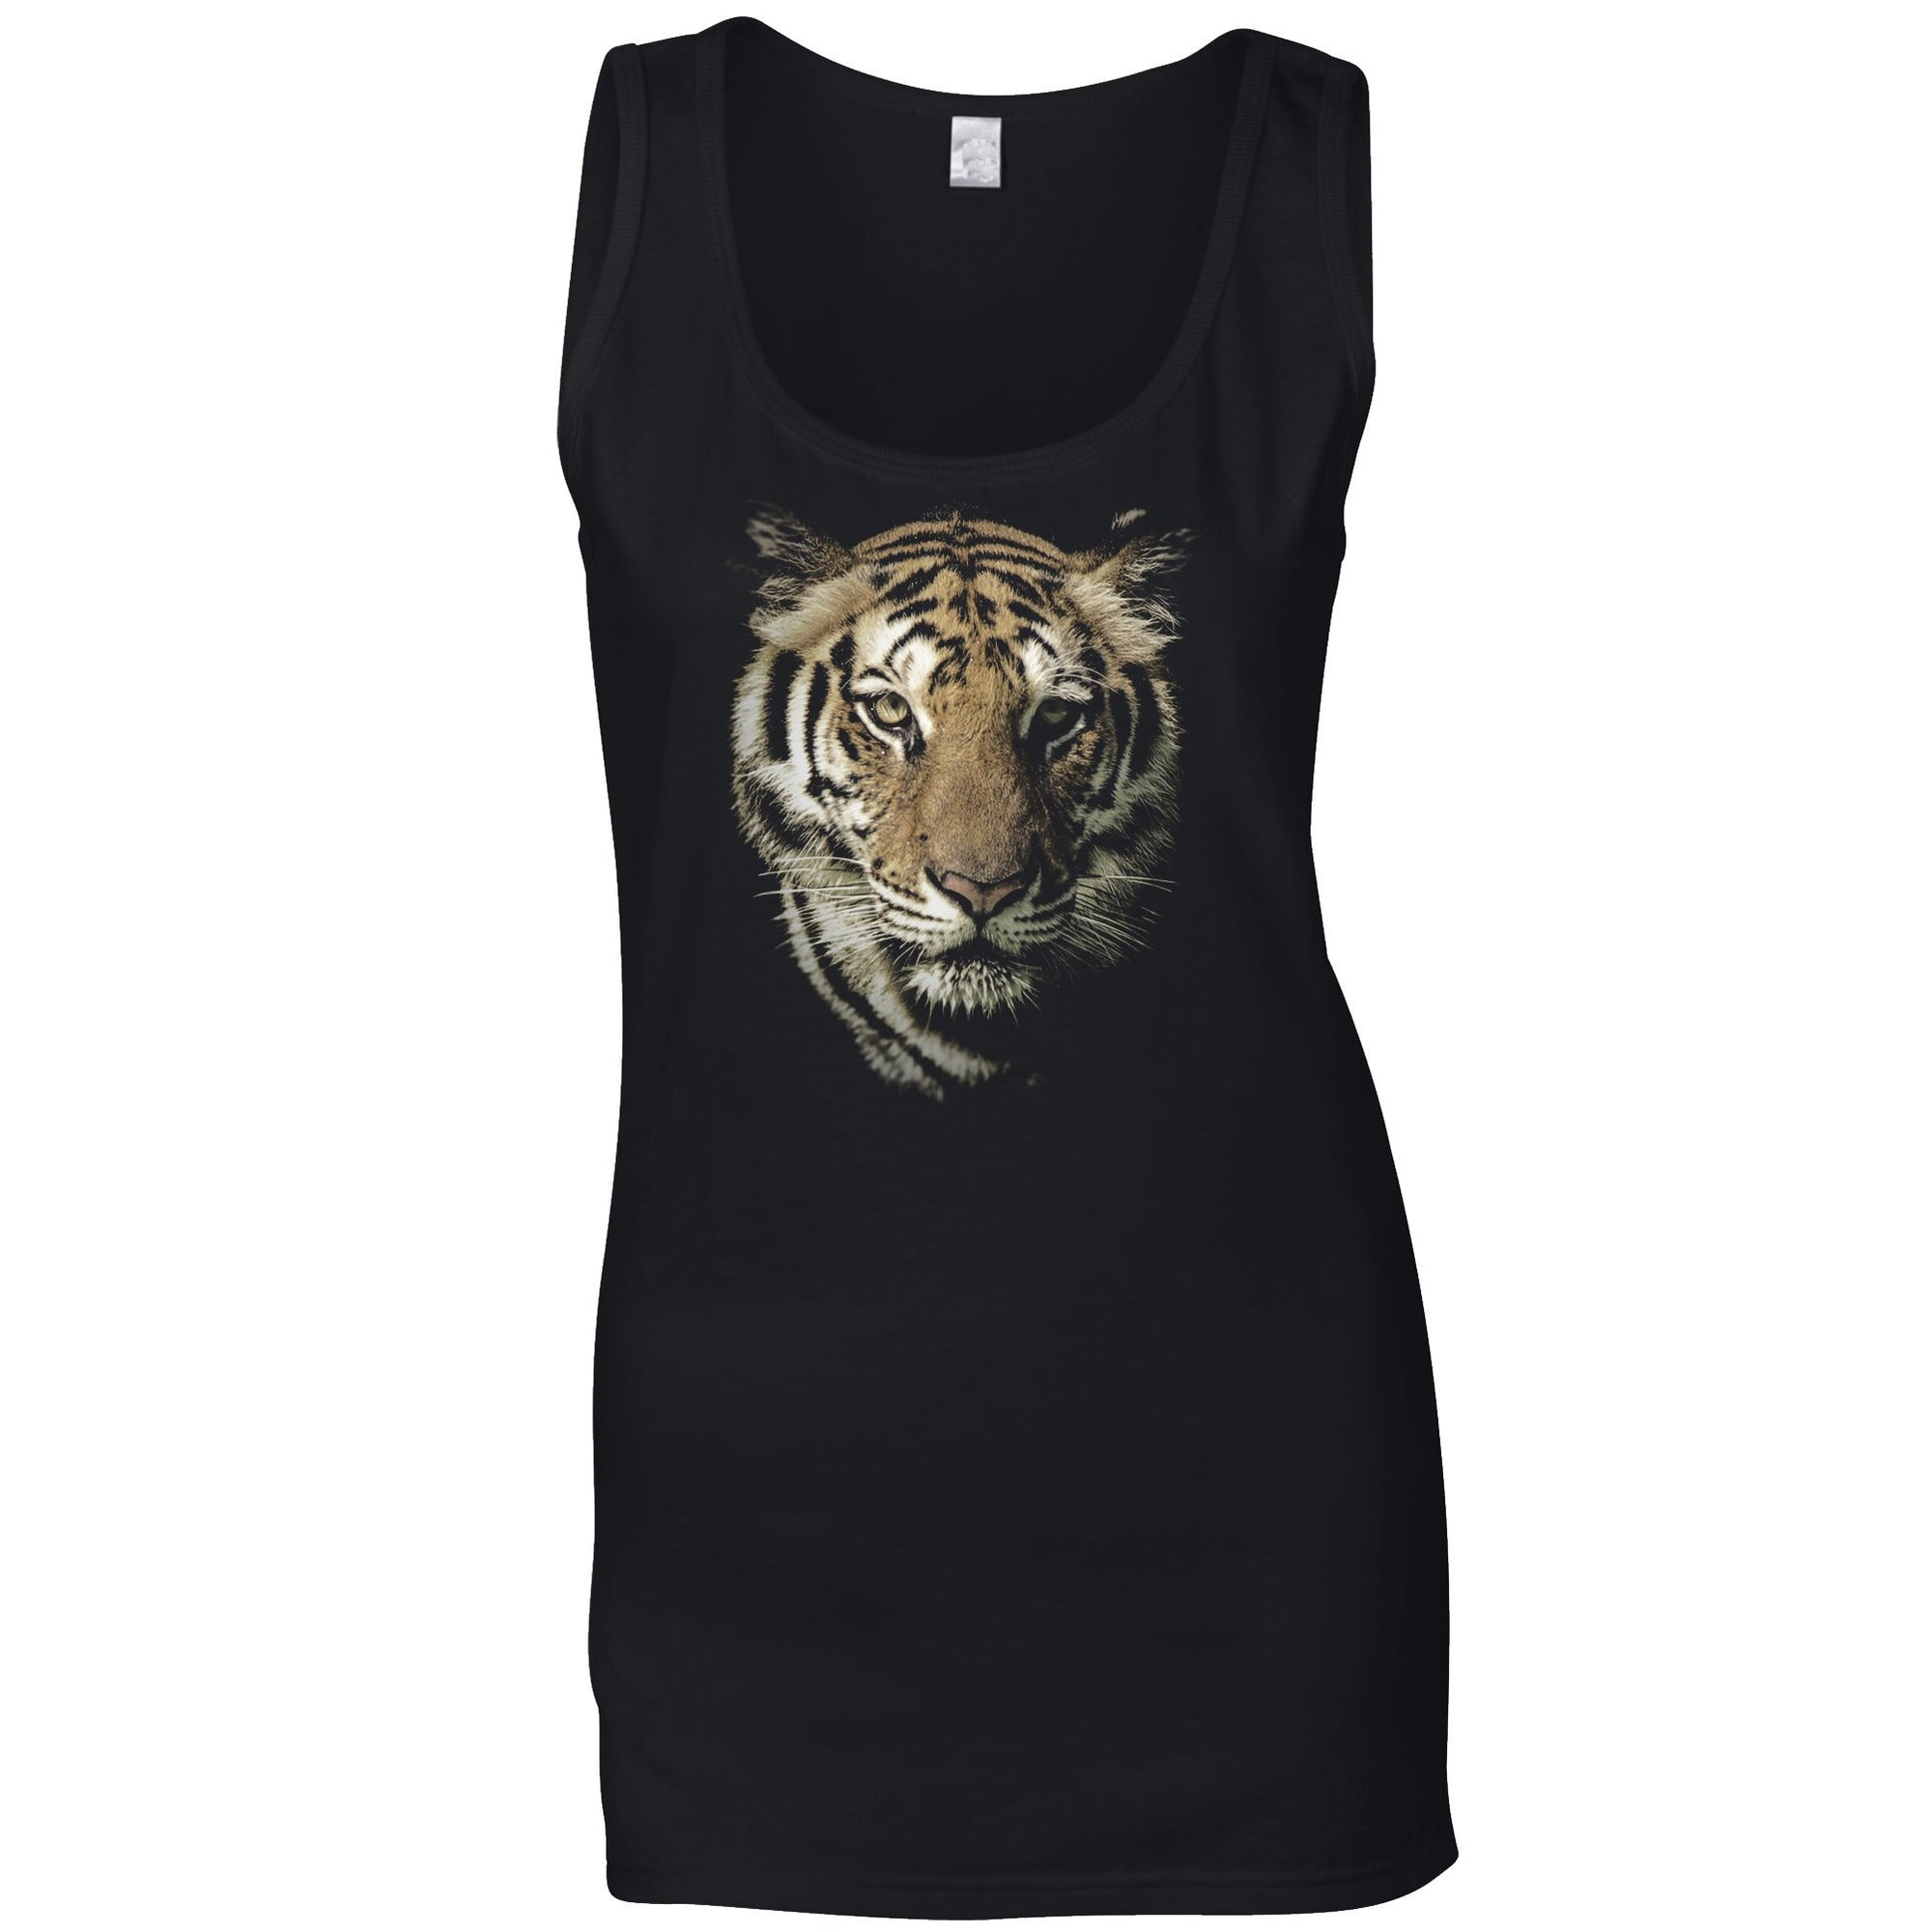 Tiger Face Women's Vest Majestic Big Cat Head